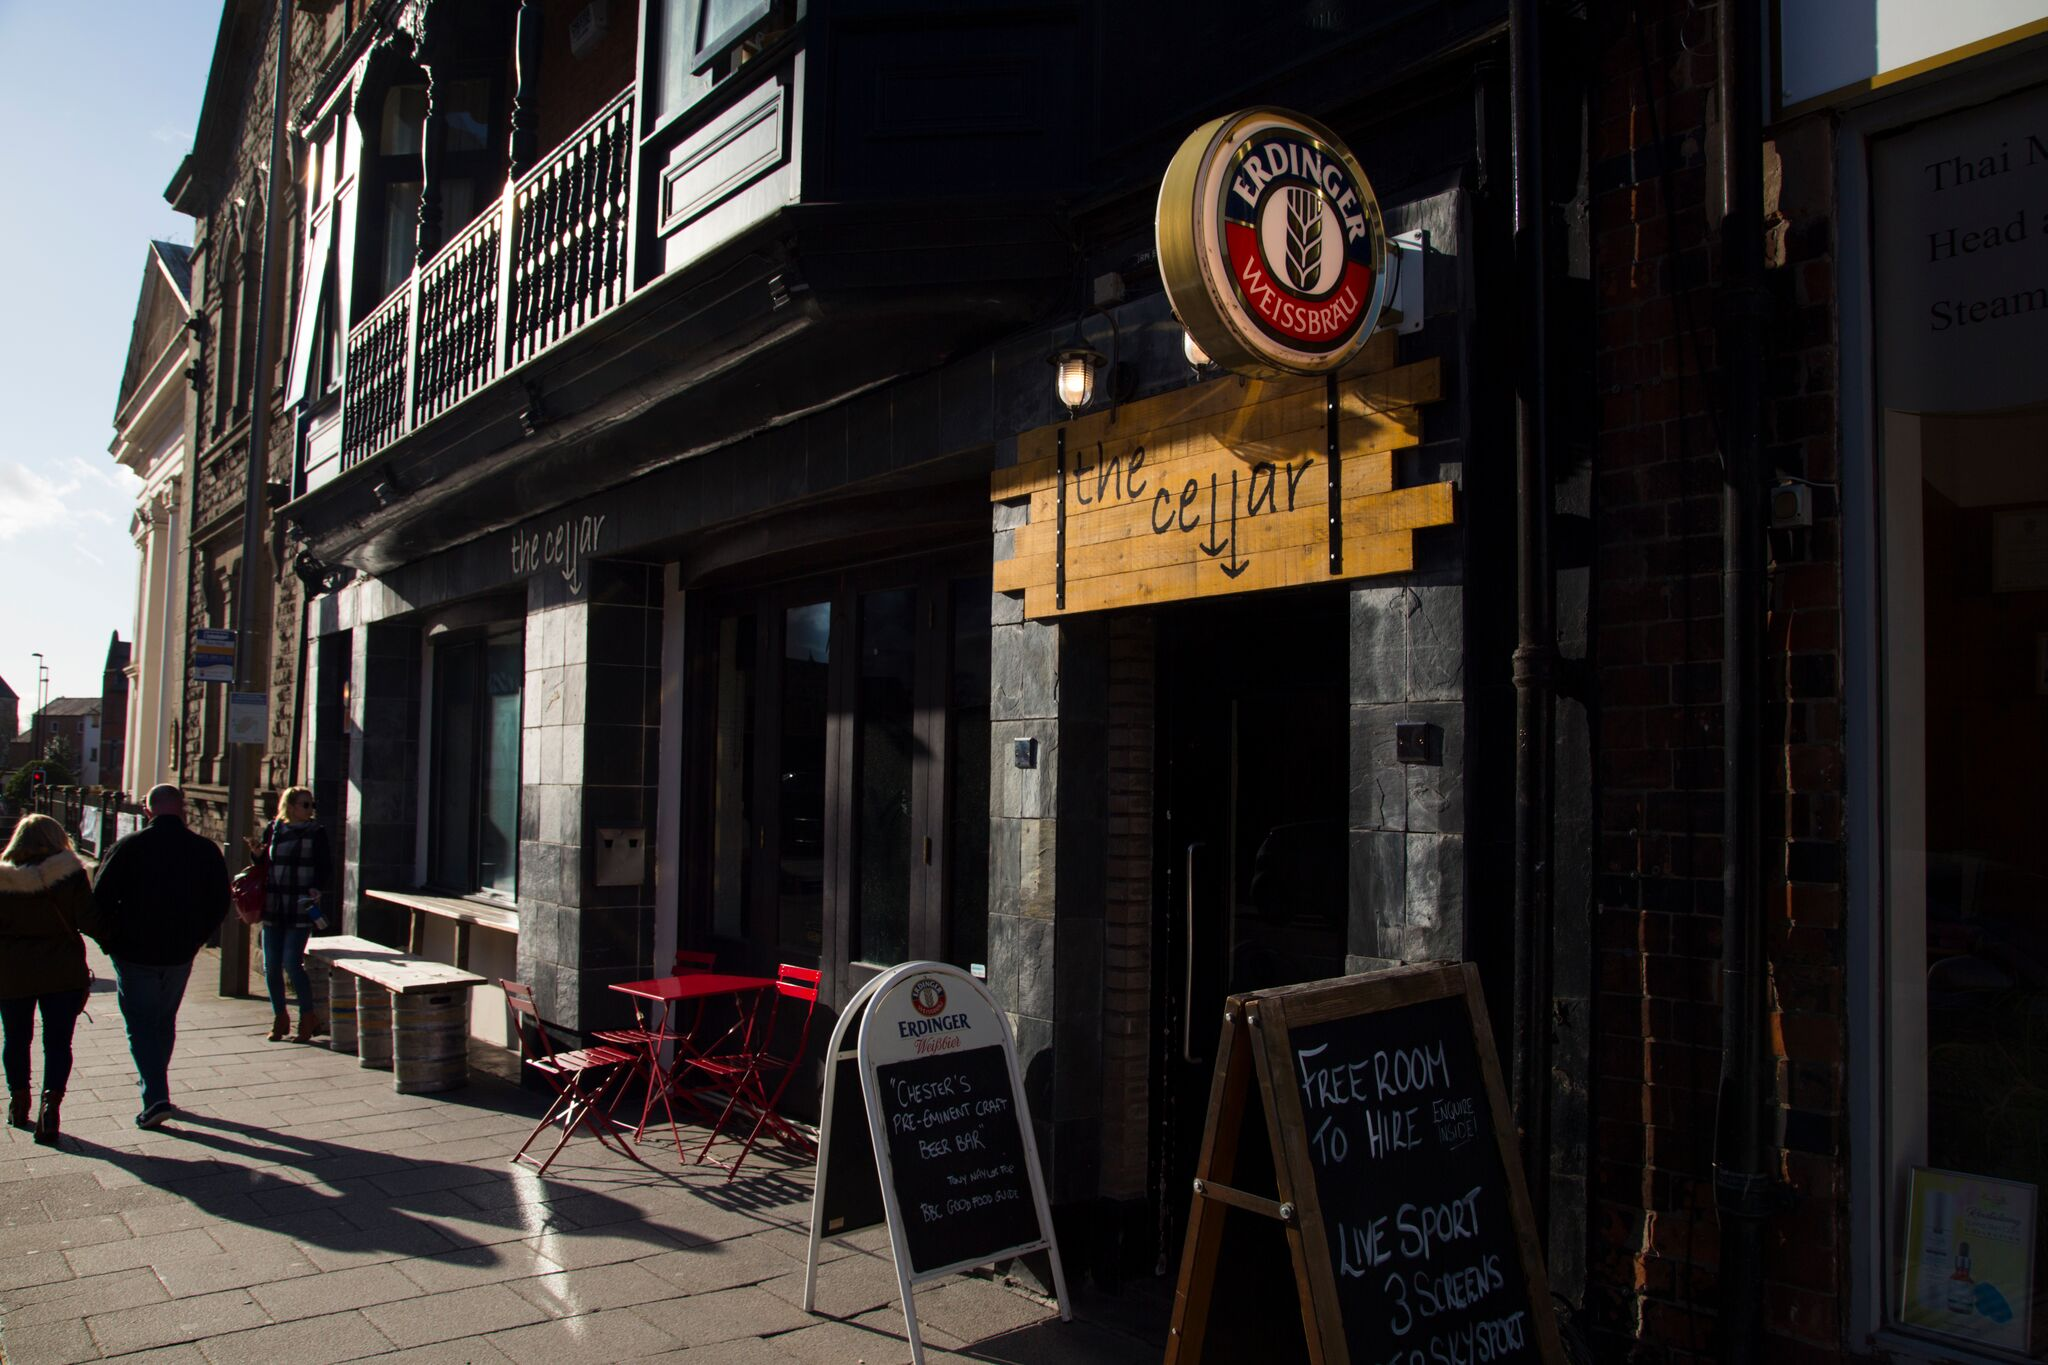 'We are all about great beer, knowledgeable staff and excellent company here in Chester' -